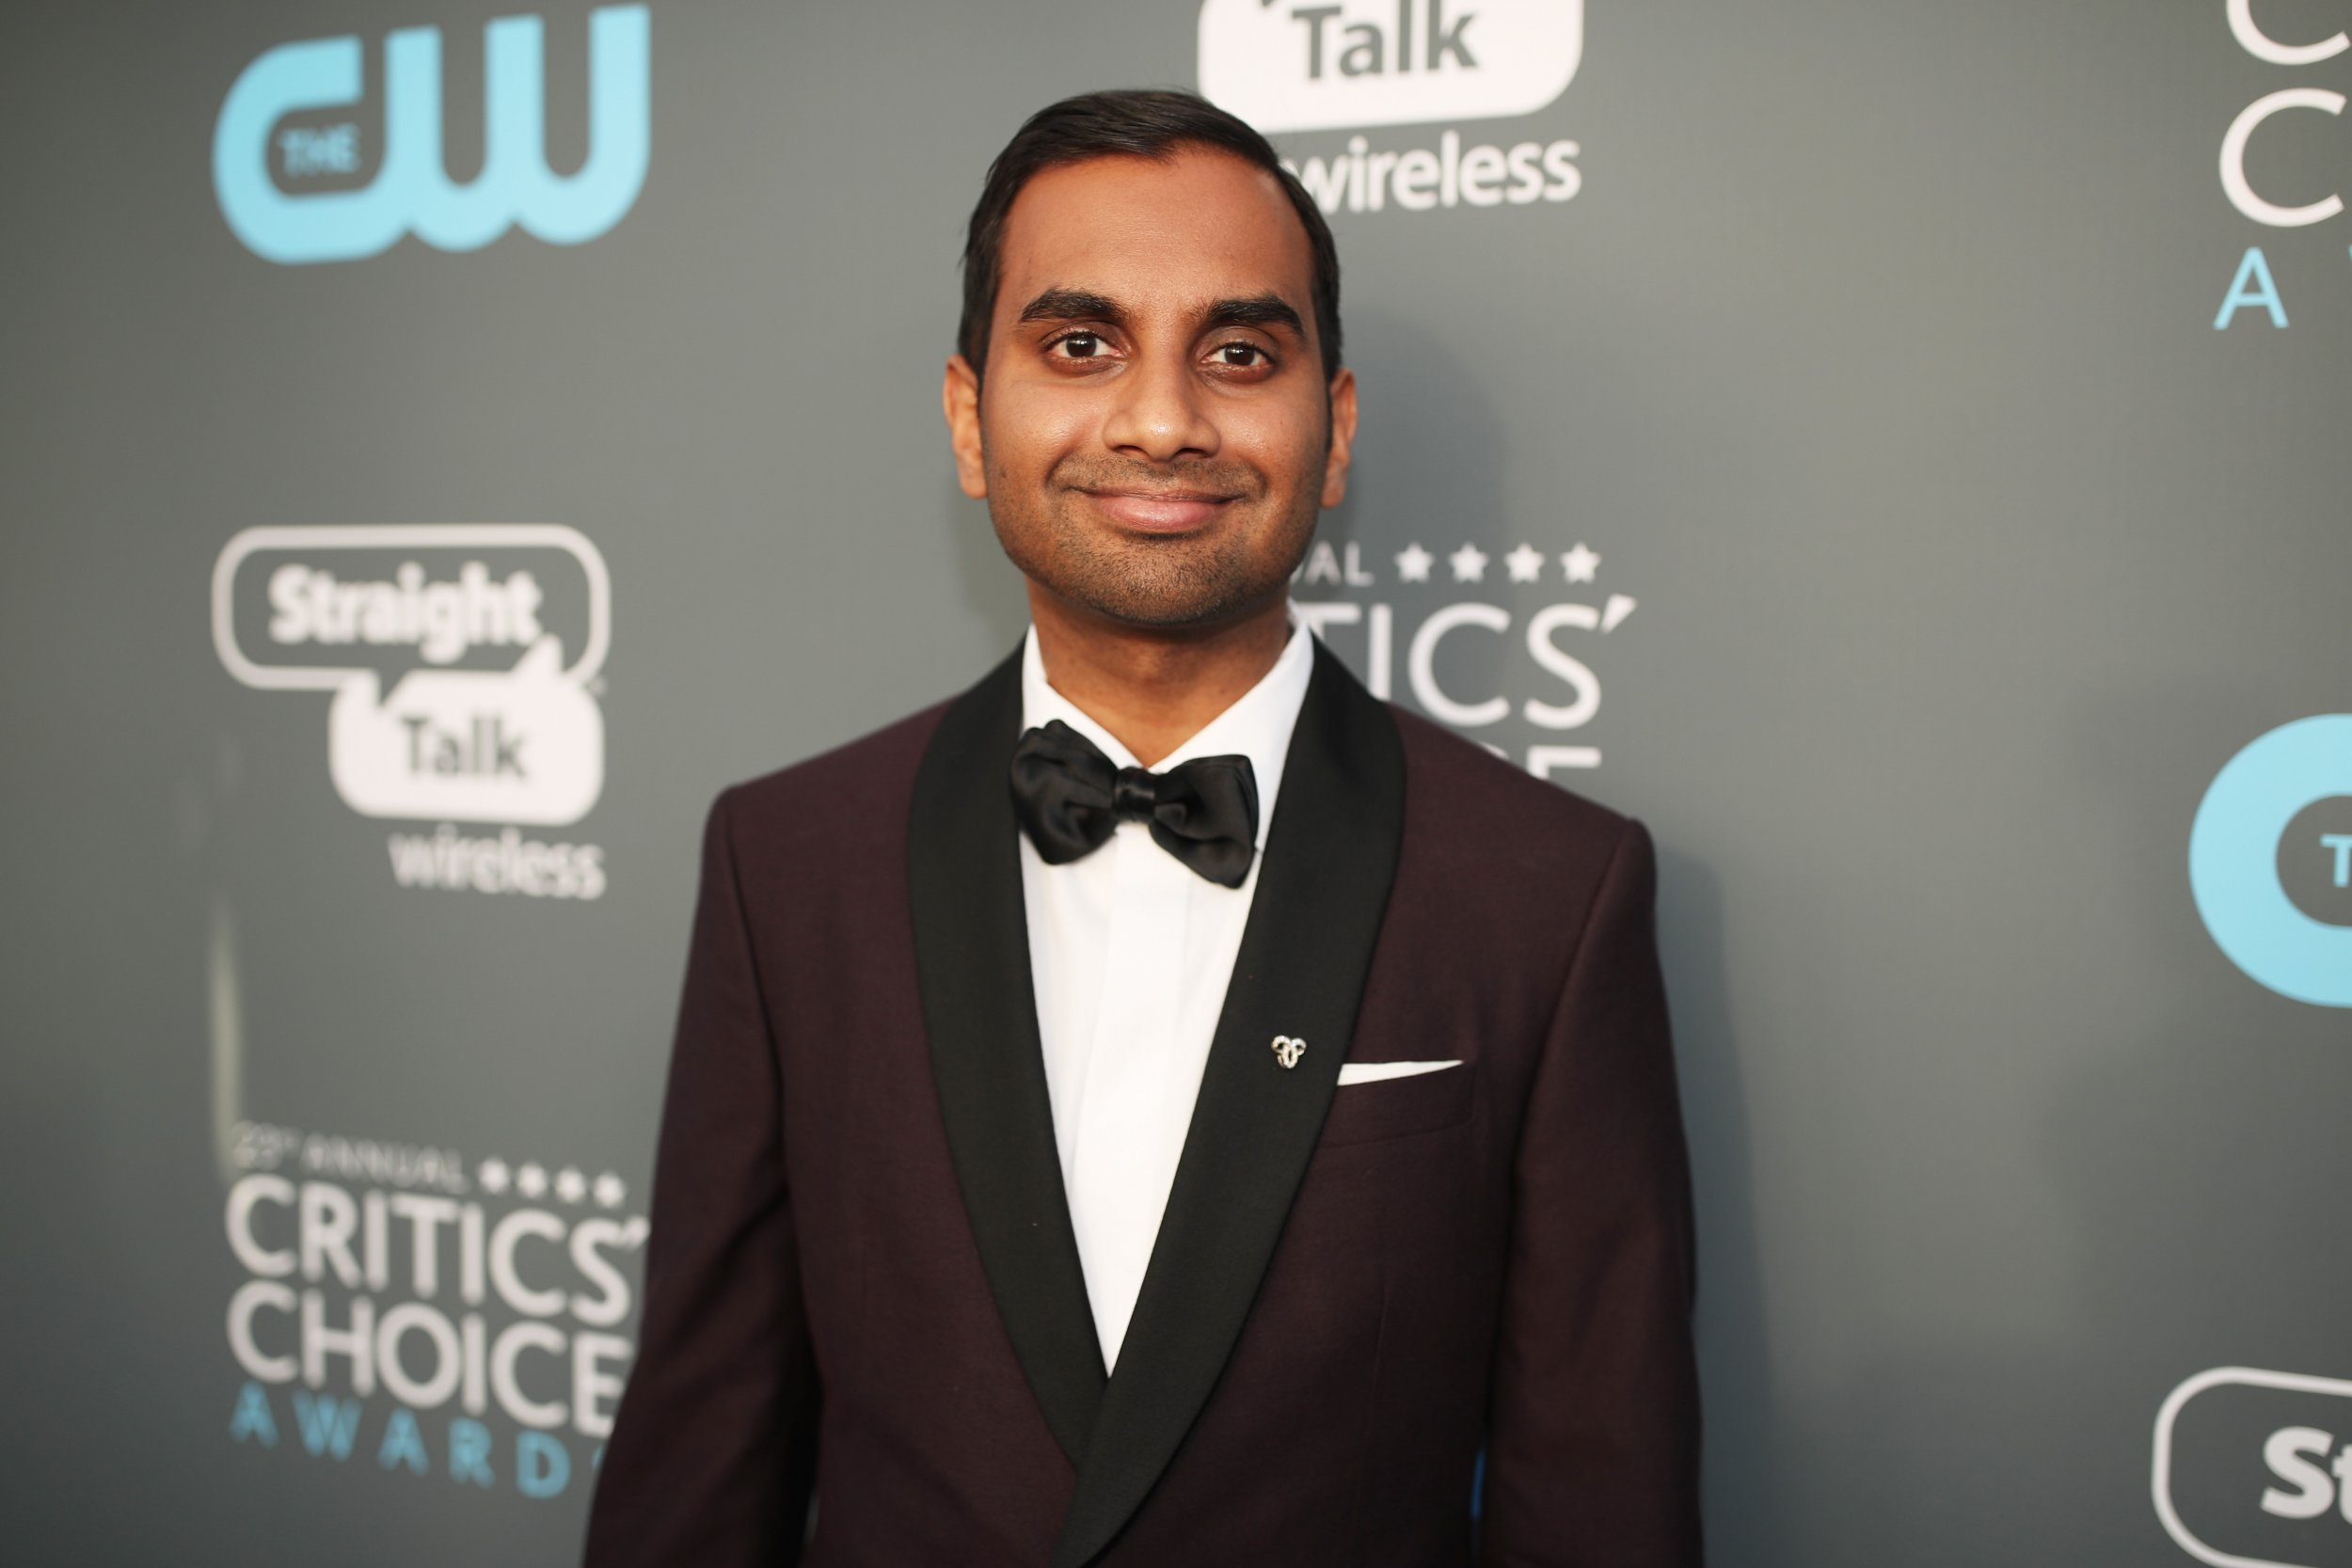 Aziz Ansari responds to sexual misconduct claims